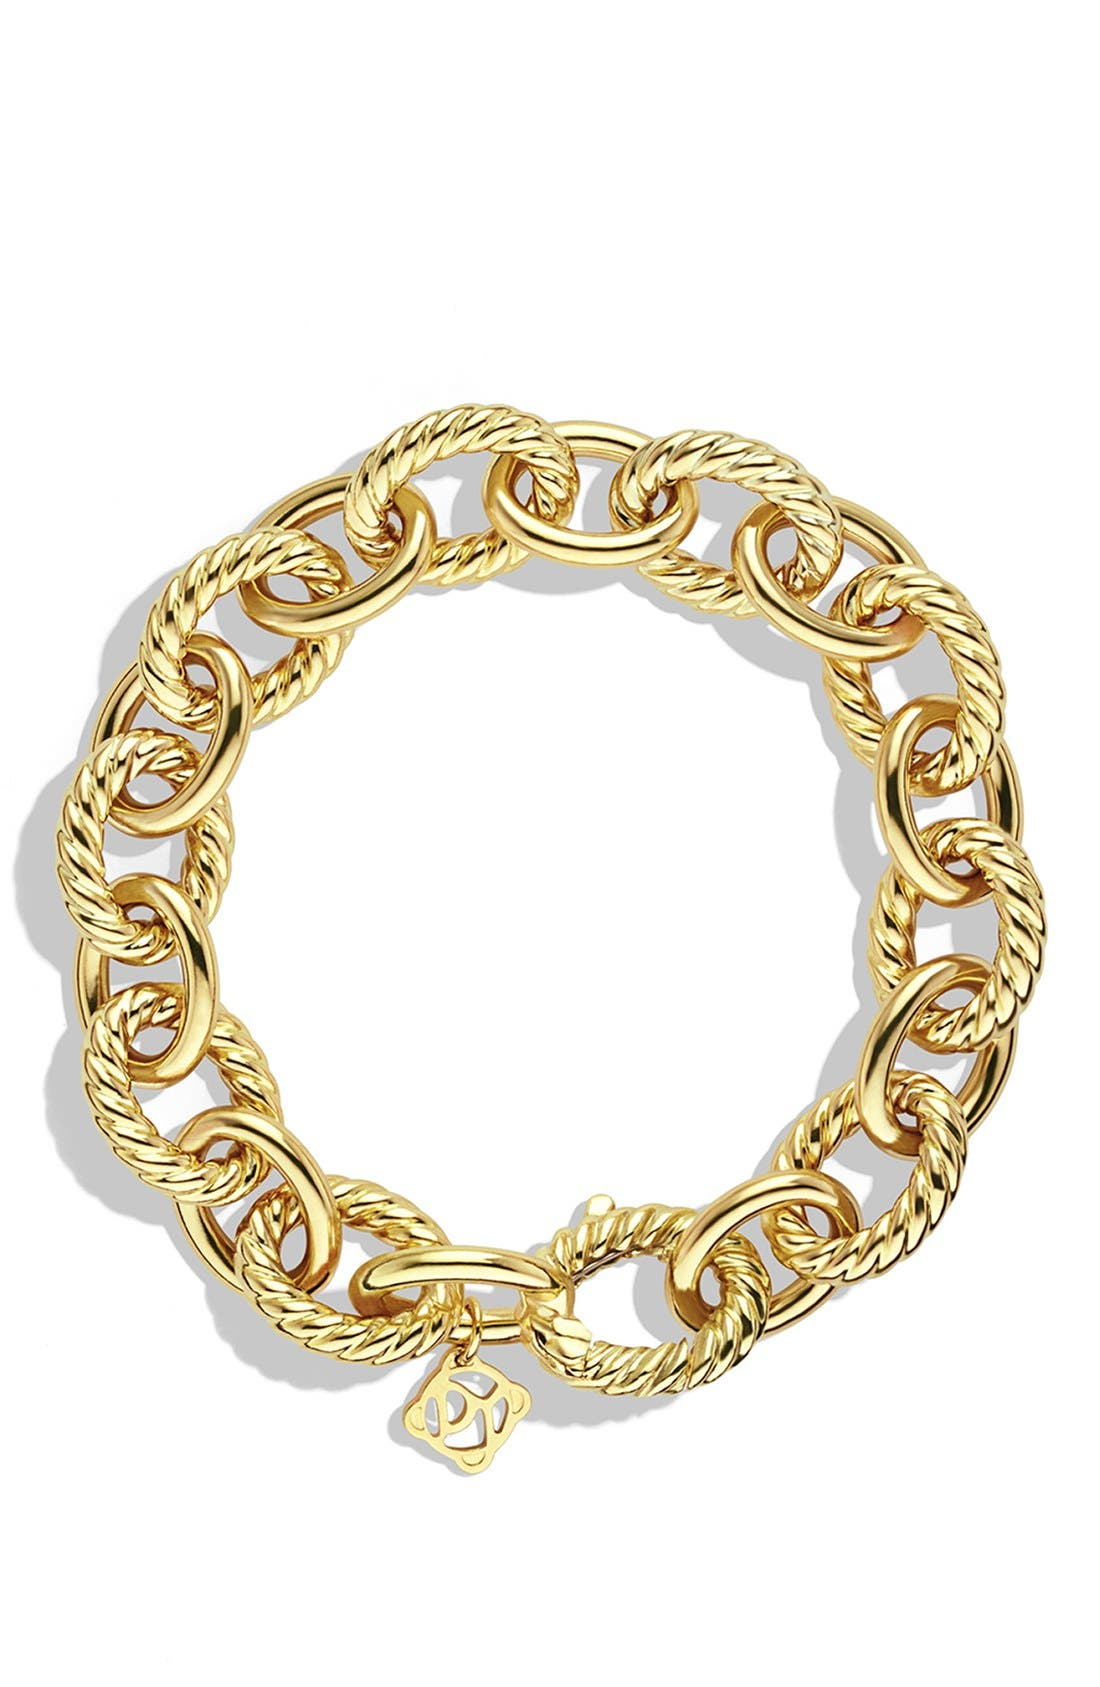 Alternate Image 2  - David Yurman 'Oval' Large Link Bracelet in Gold